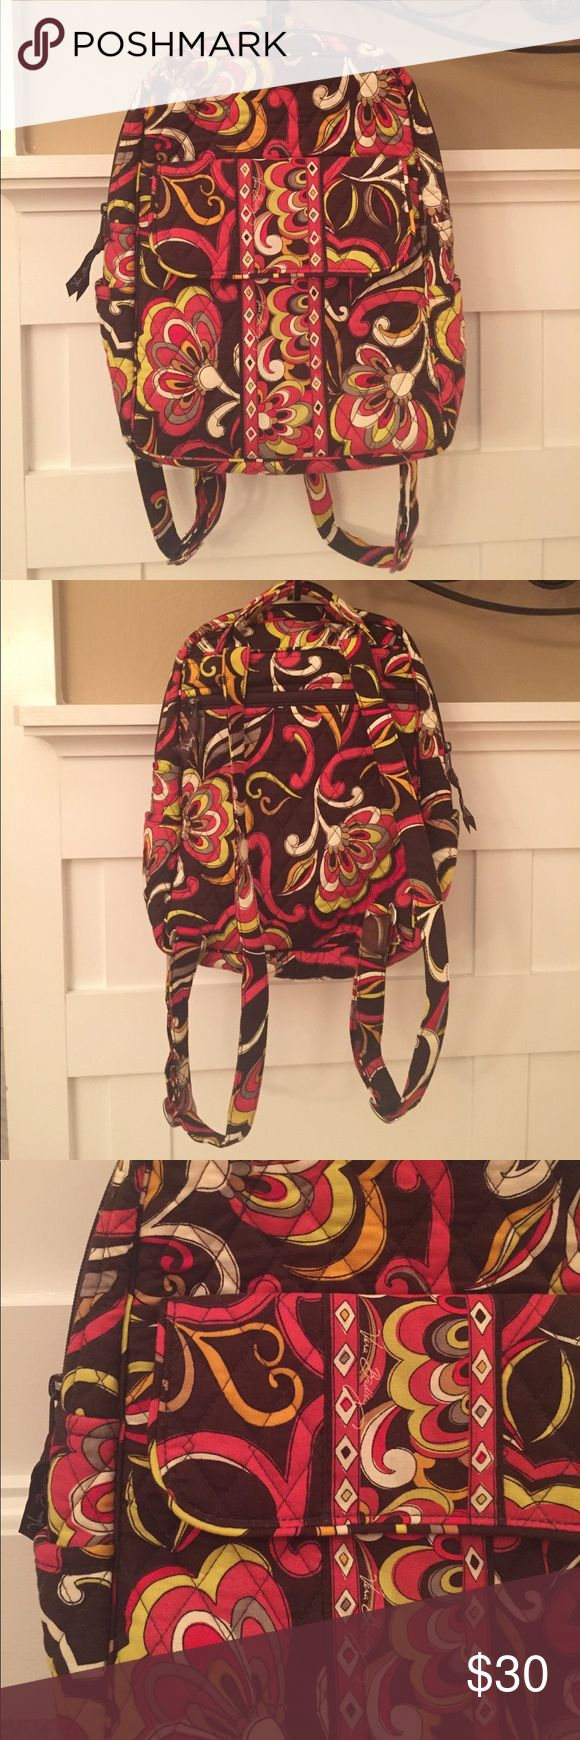 ✨SALE✨ Vera Bradley Backpack 🍁 Puccini Fall favorite! This backpack is in nearly perfect condition, as shown! Vera Bradley Bags Backpacks